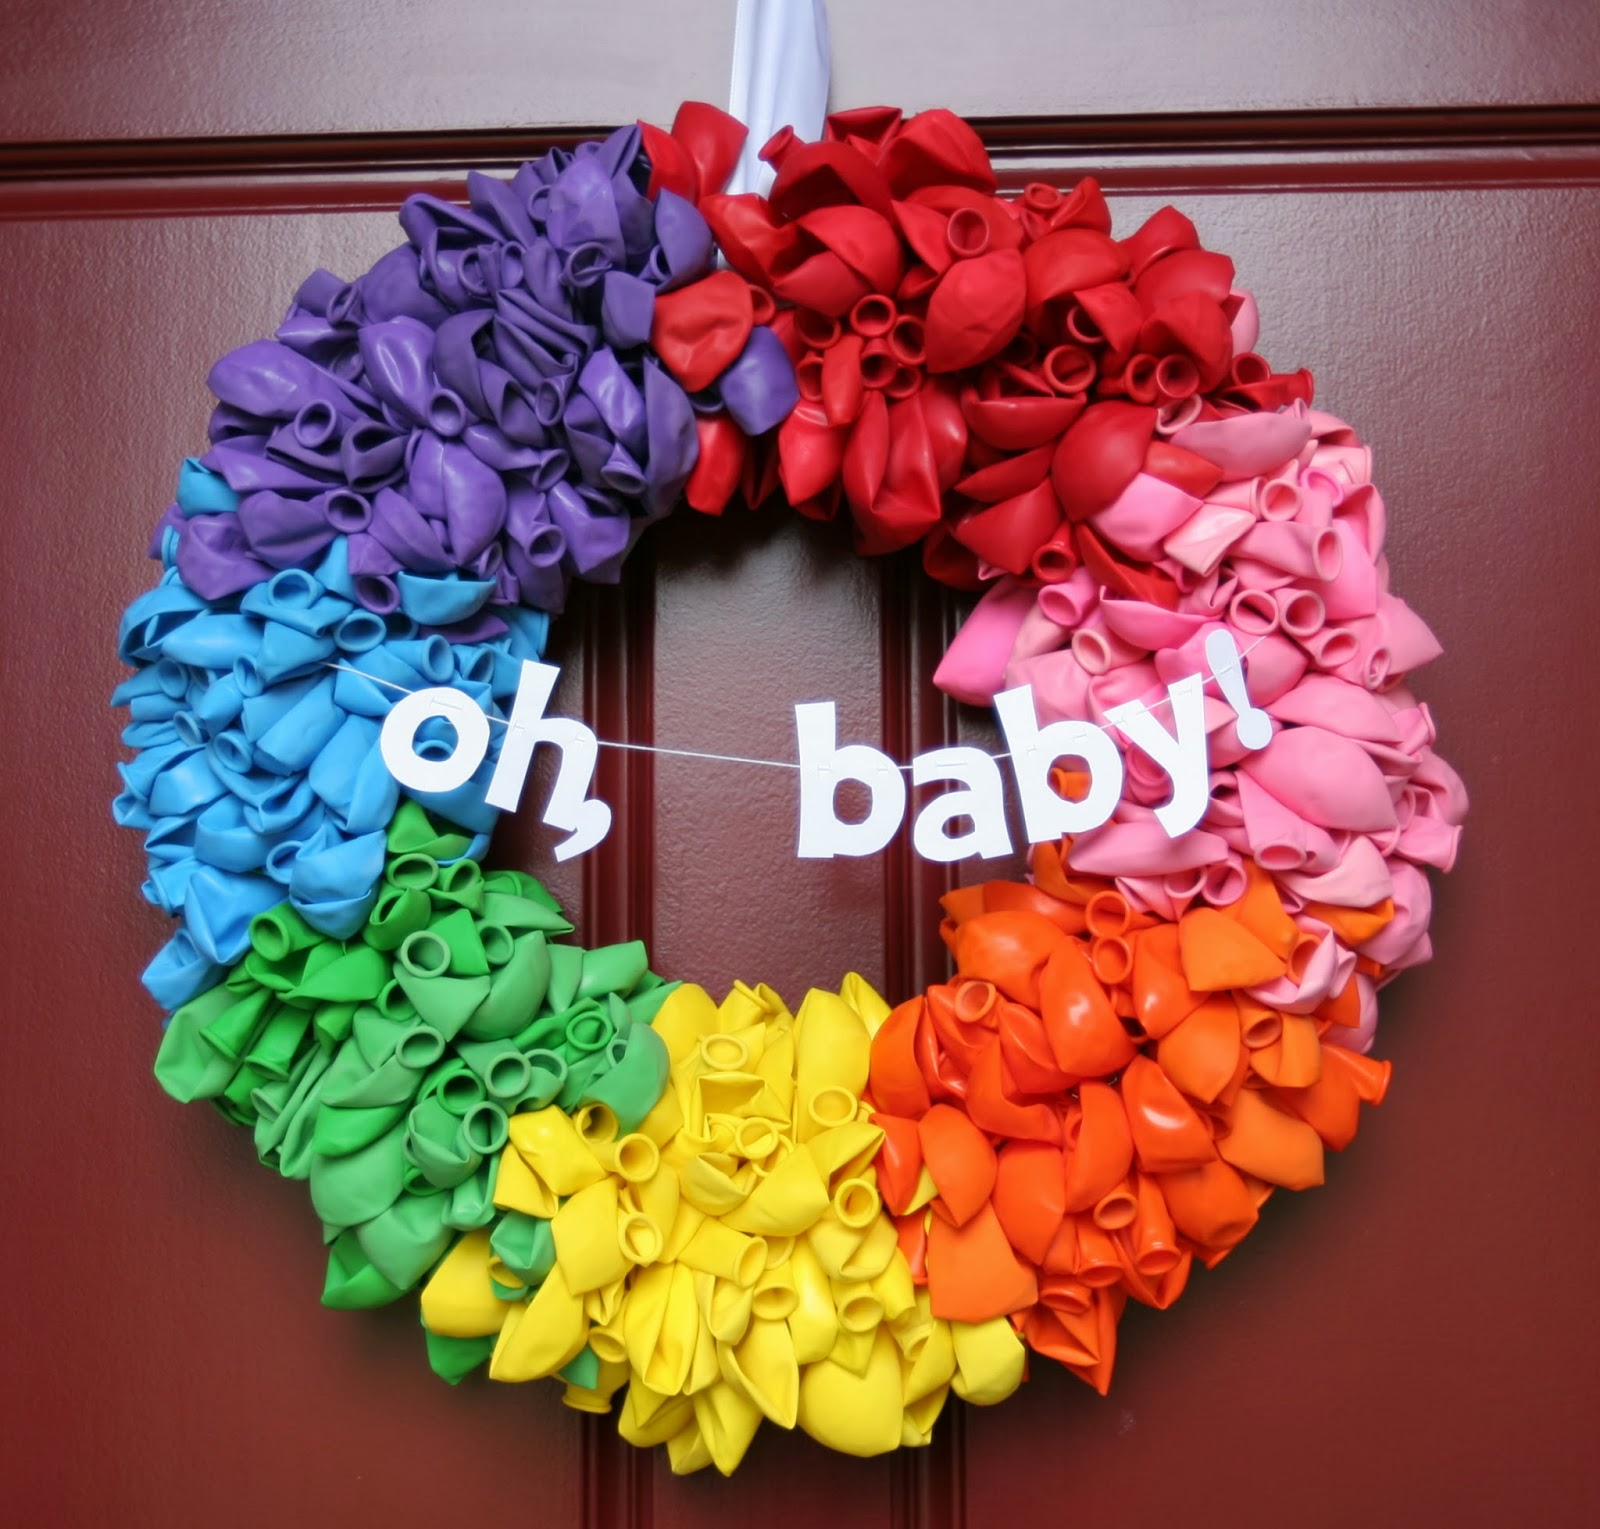 I Gave New Life To The Rainbow Balloon Wreath With A Little White Paper  Banner.